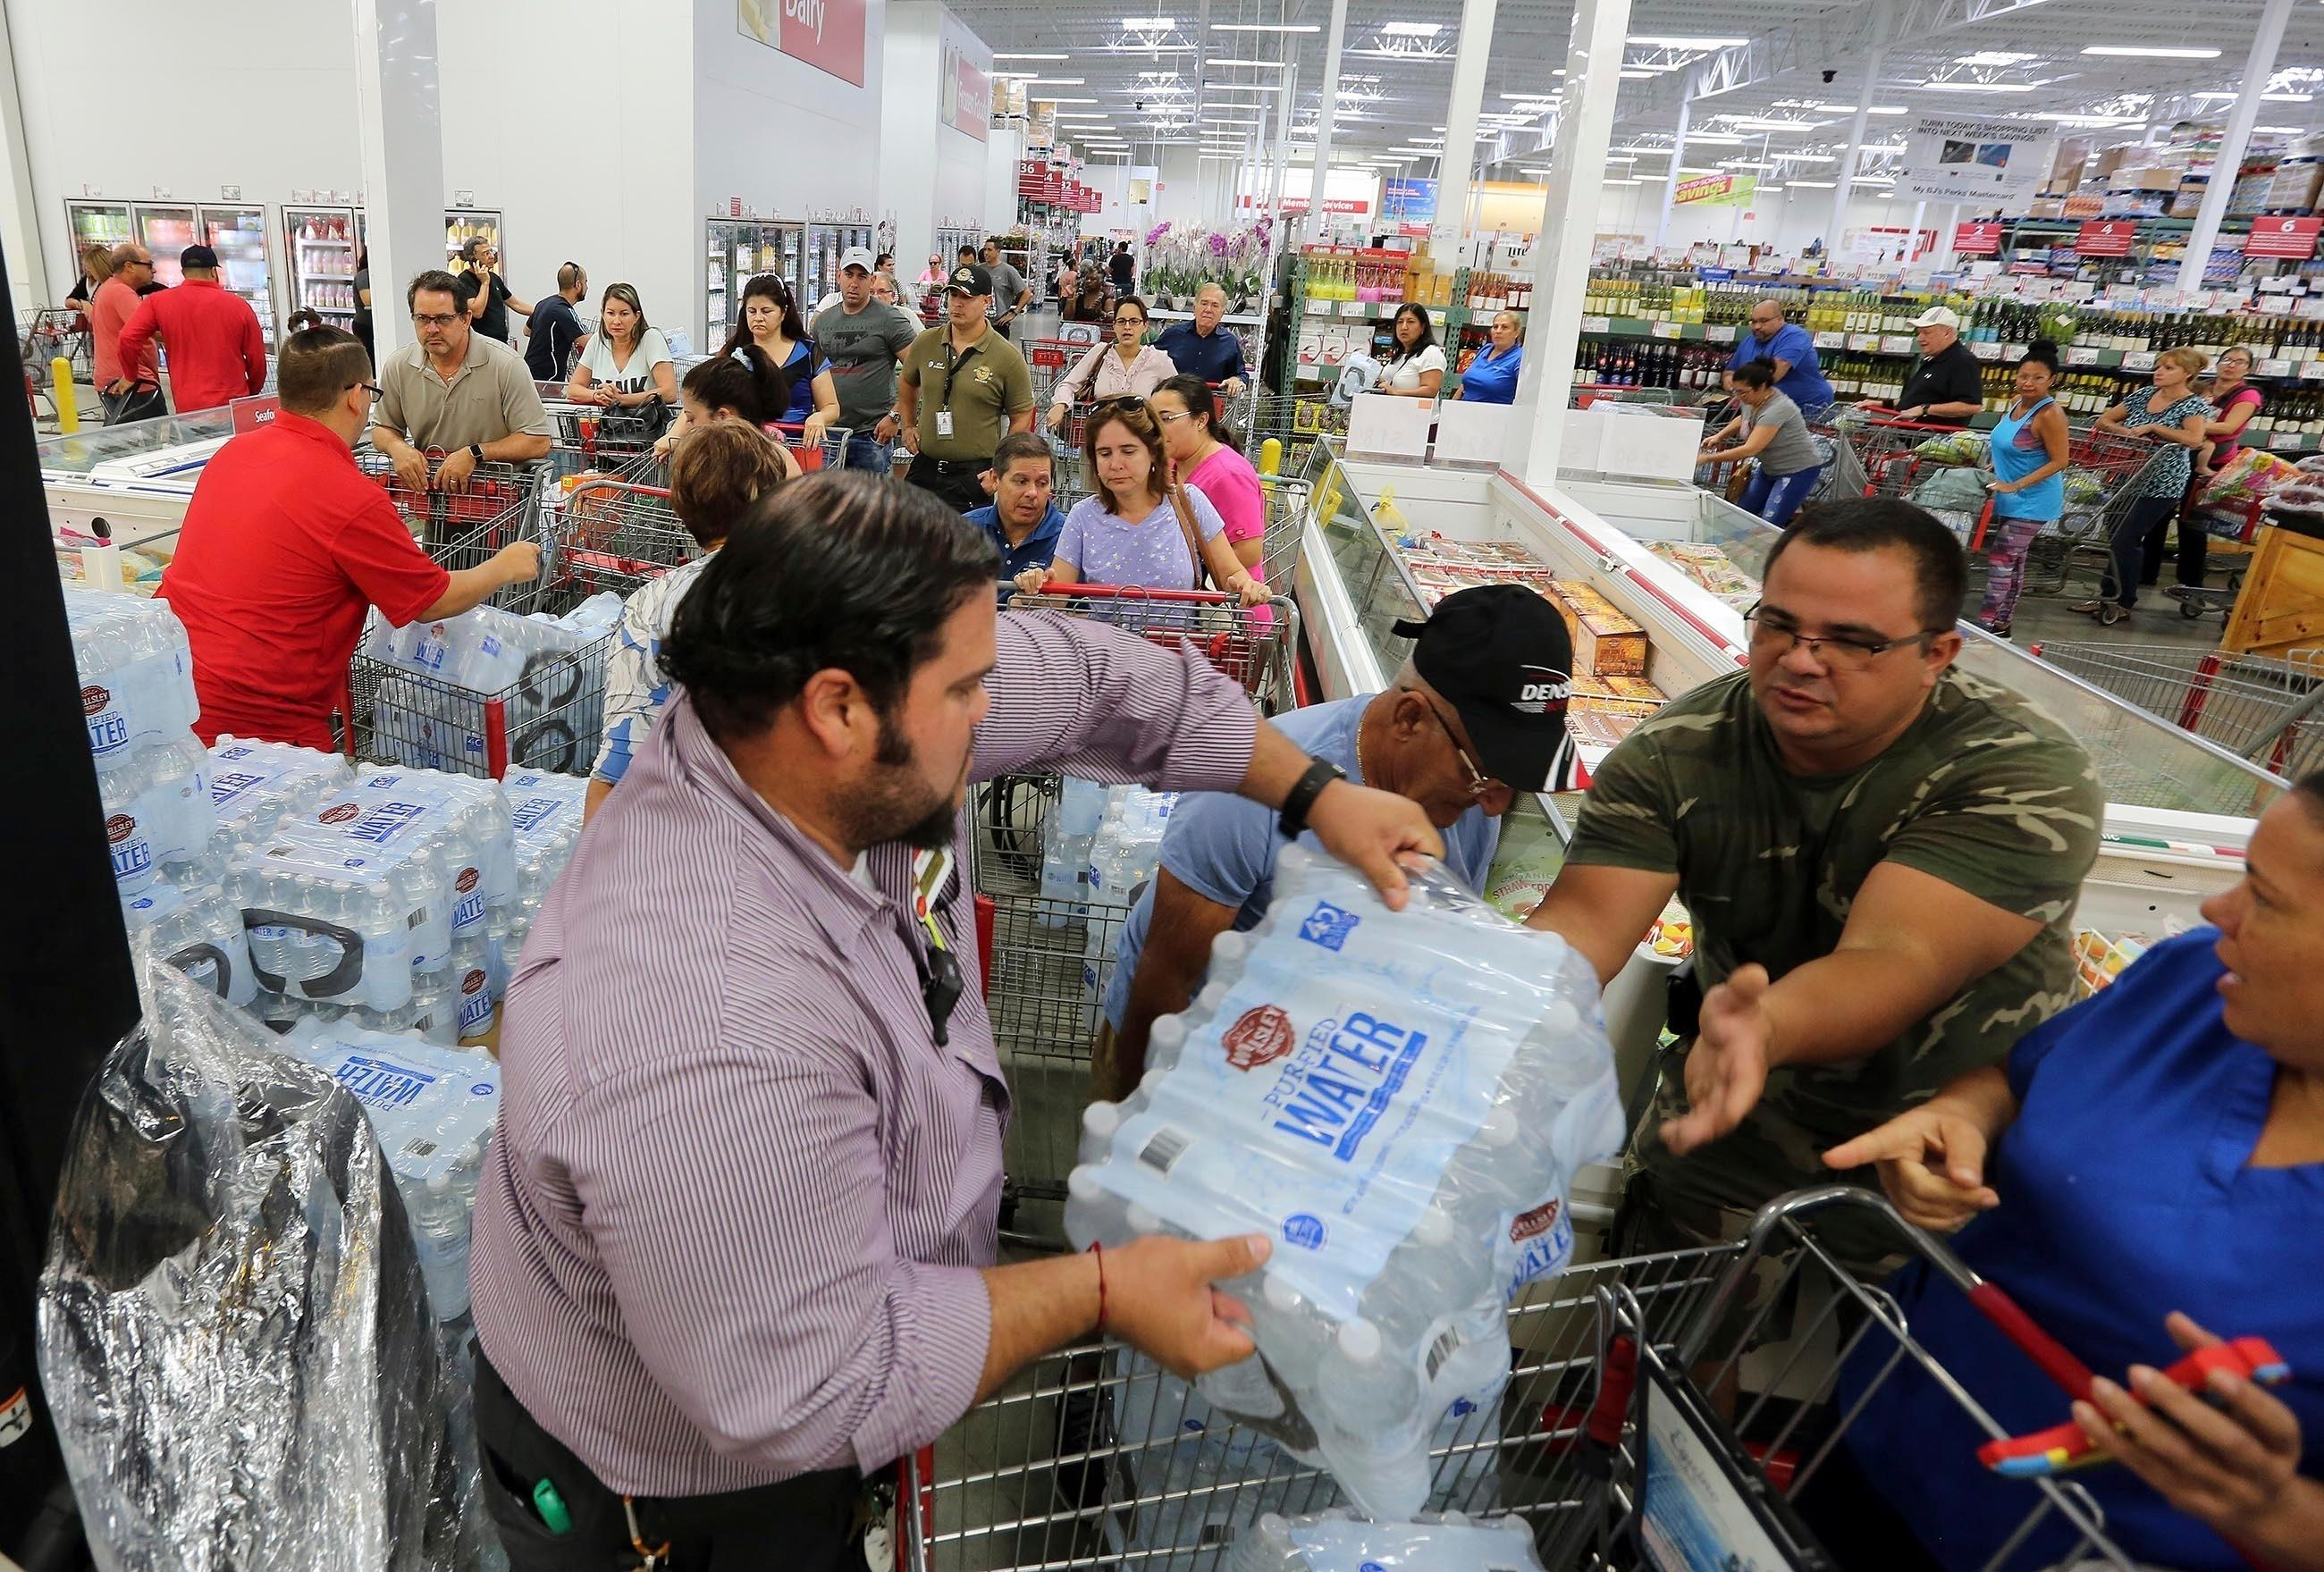 FILE- This Sept. 5, 2017 file photo shows residents in a long line waiting to purchase water at BJ Wholesale in preparation for Hurricane Irma in Miami. Roberto Koltun/Miami Herald via AP, File)